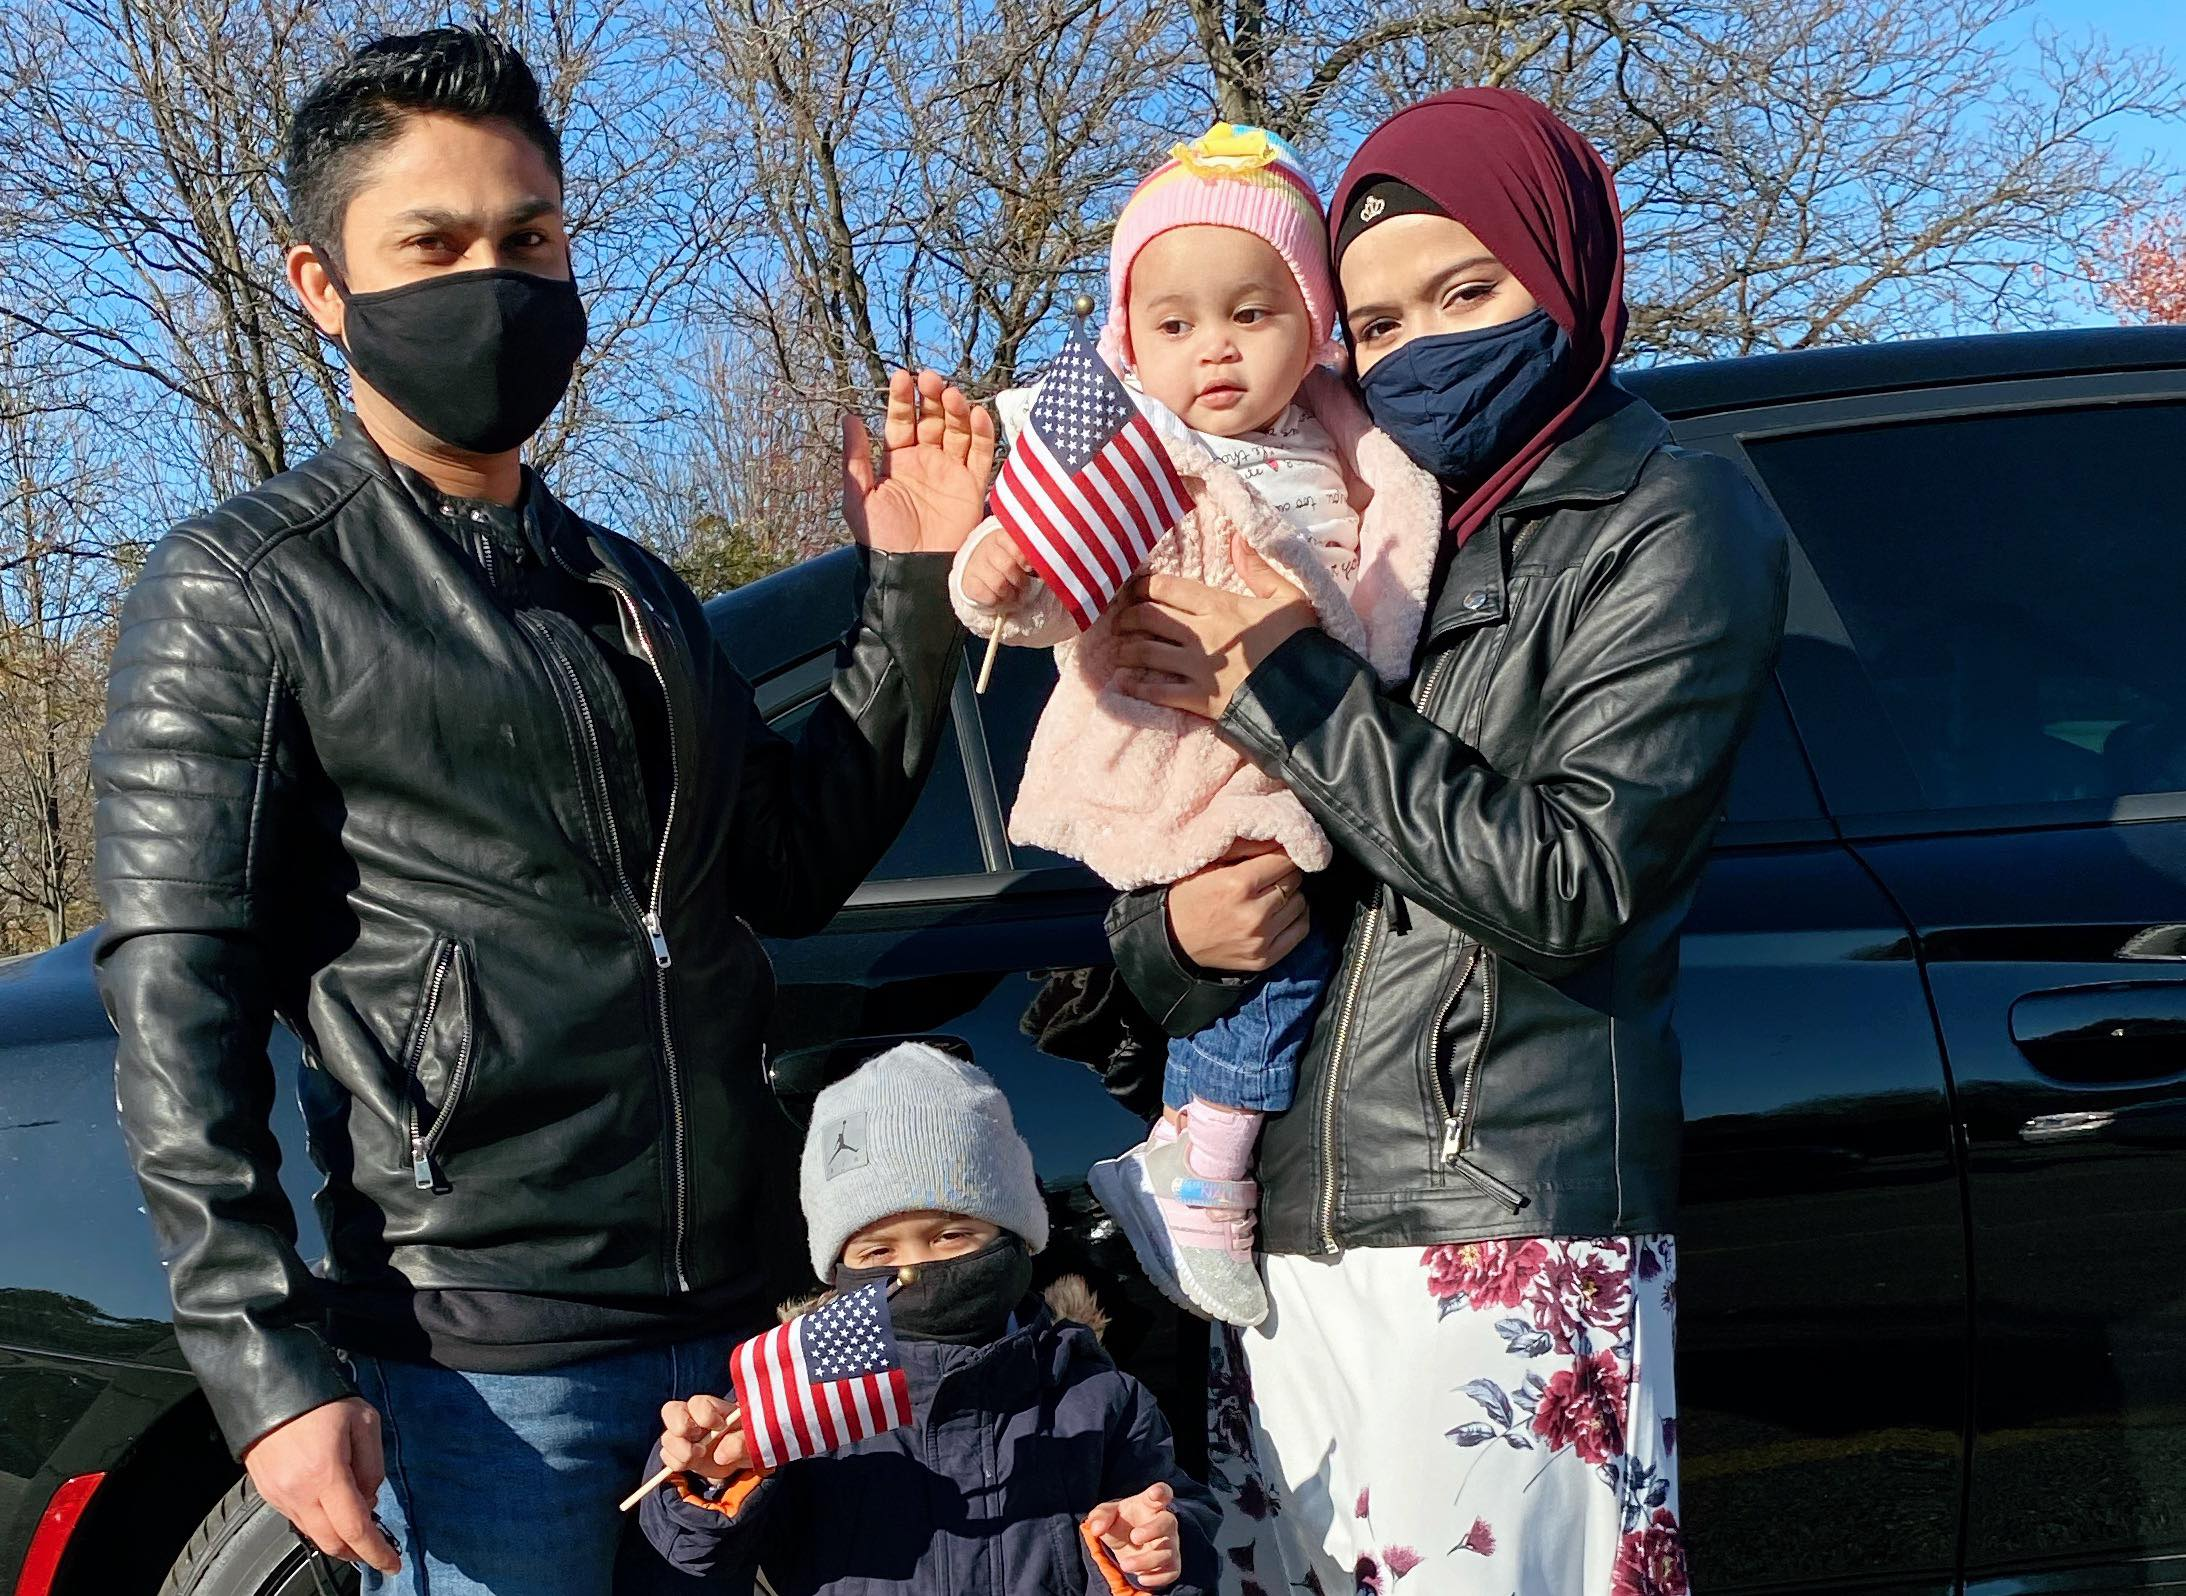 A Rohingya family in Chicago poses in front of their car. The parents wear black leather jackets and are masked. The mom is in a red hijab that matches her flowery dress. The two children wave American flags.